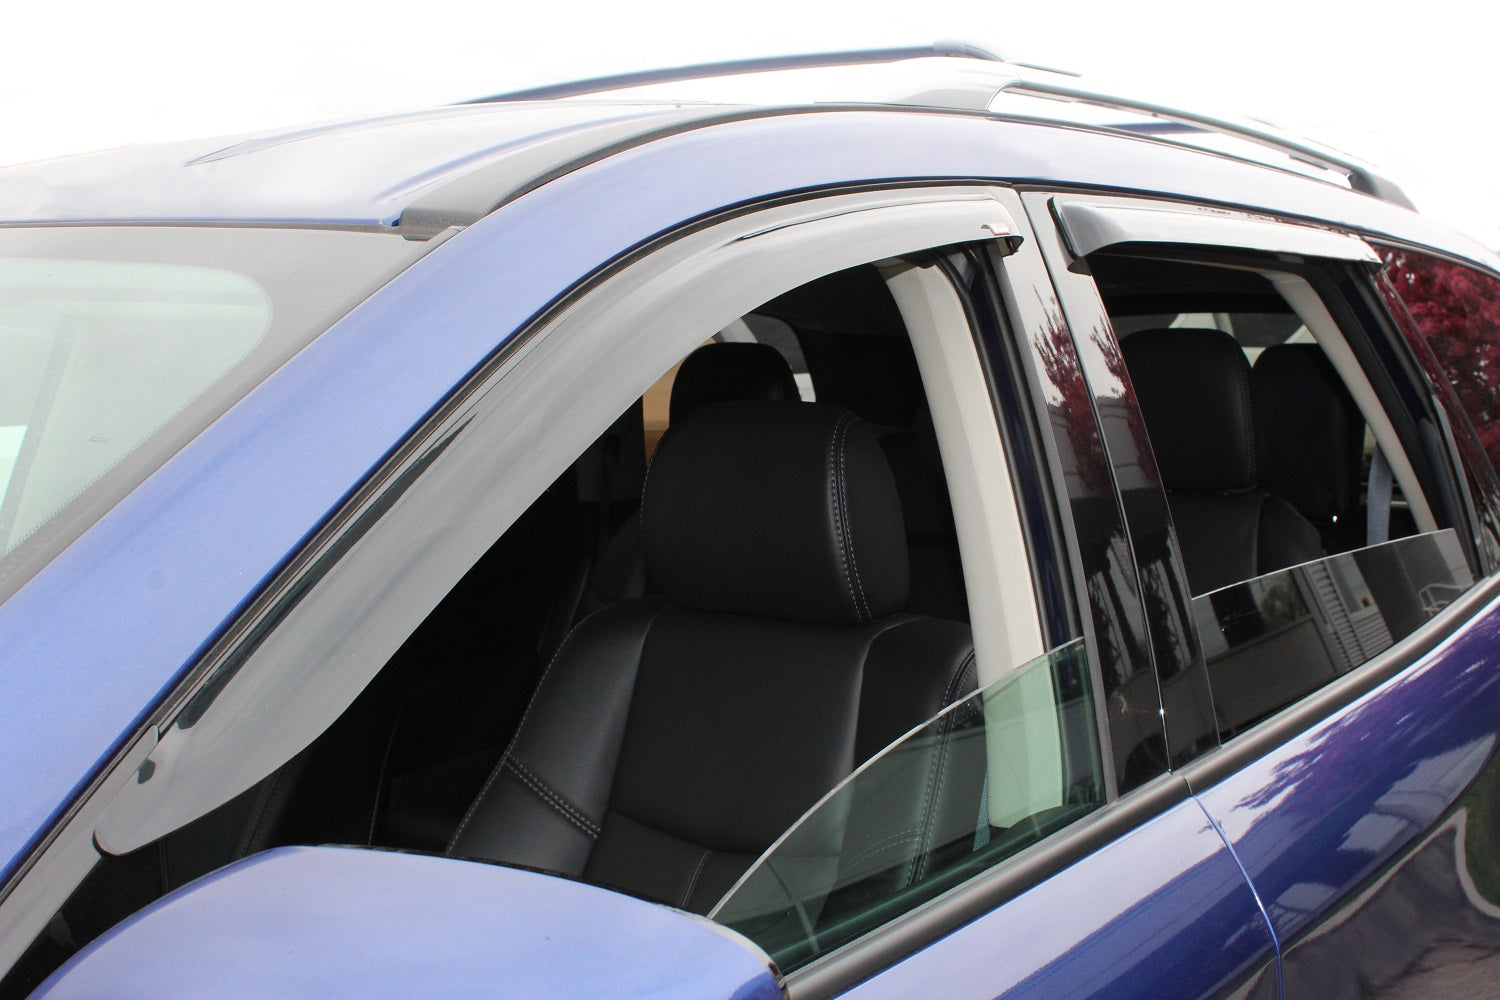 2013 Nissan Pathfinder Slim Wind Deflector